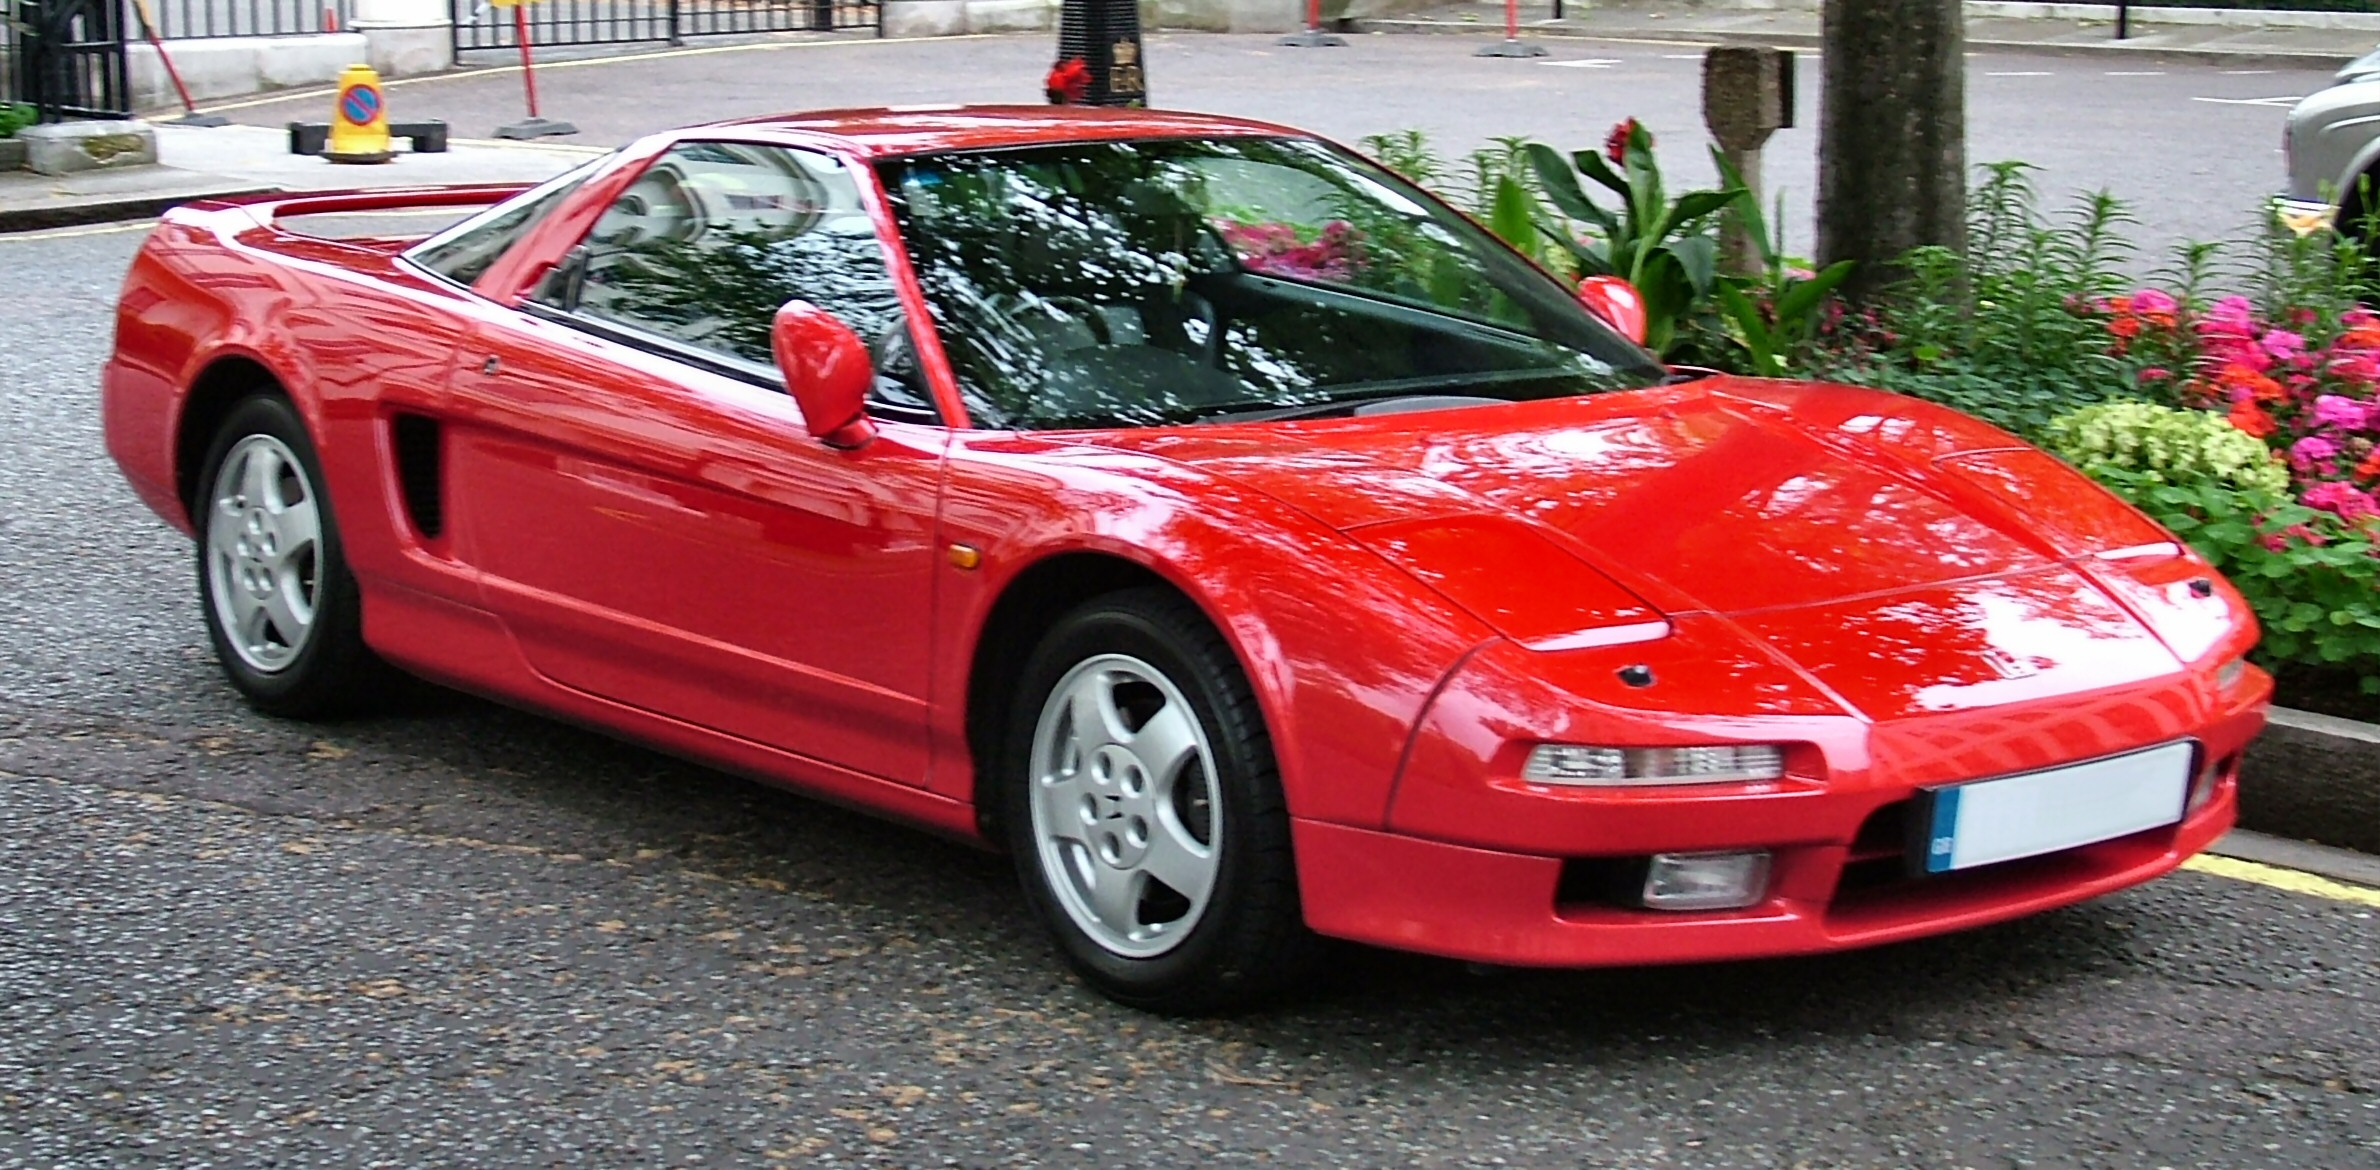 Honda nsx-t photo - 3